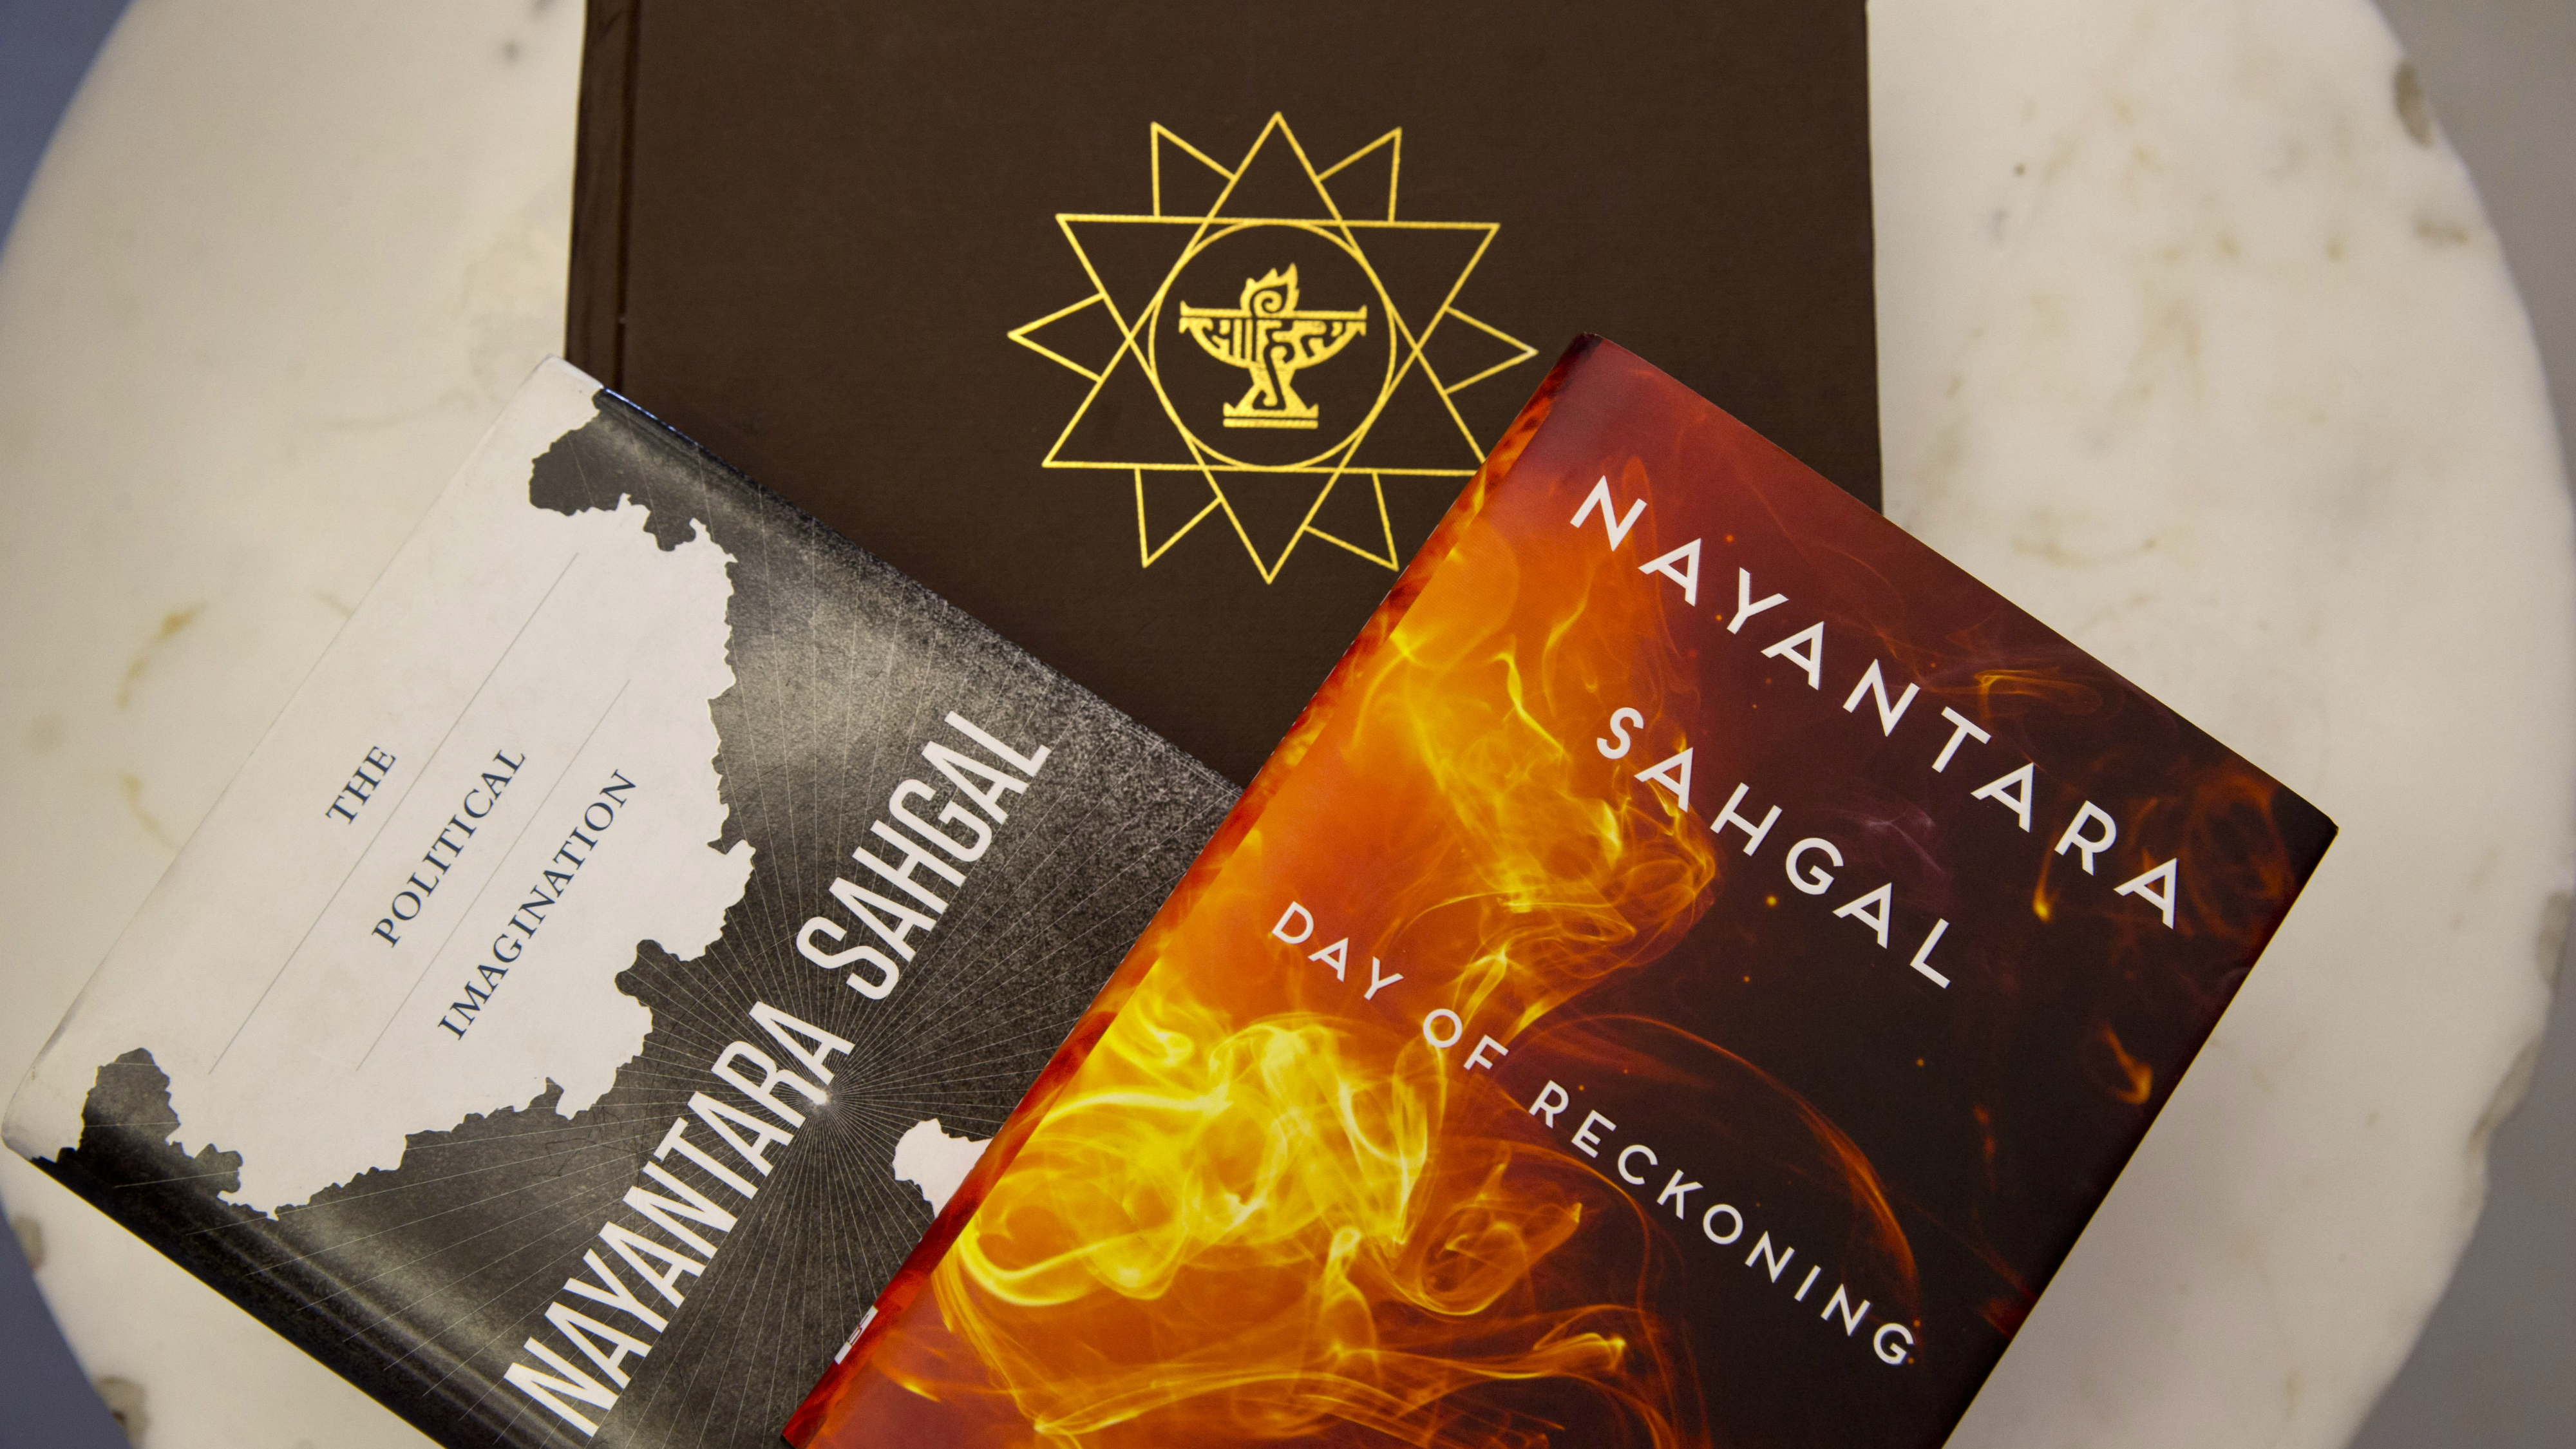 Books by Indian writer Nayantara Sahgal are arranged for illustration purpose at a bookstore in New Delhi, India, Wednesday, Oct. 14, 2015. Dozens of writers, including Sahgal, have returned India's highest literary honor to protest what they call a growing climate of intolerance in the country since Prime Minister Narendra Modi's government took office. (AP Photo/Saurabh Das)